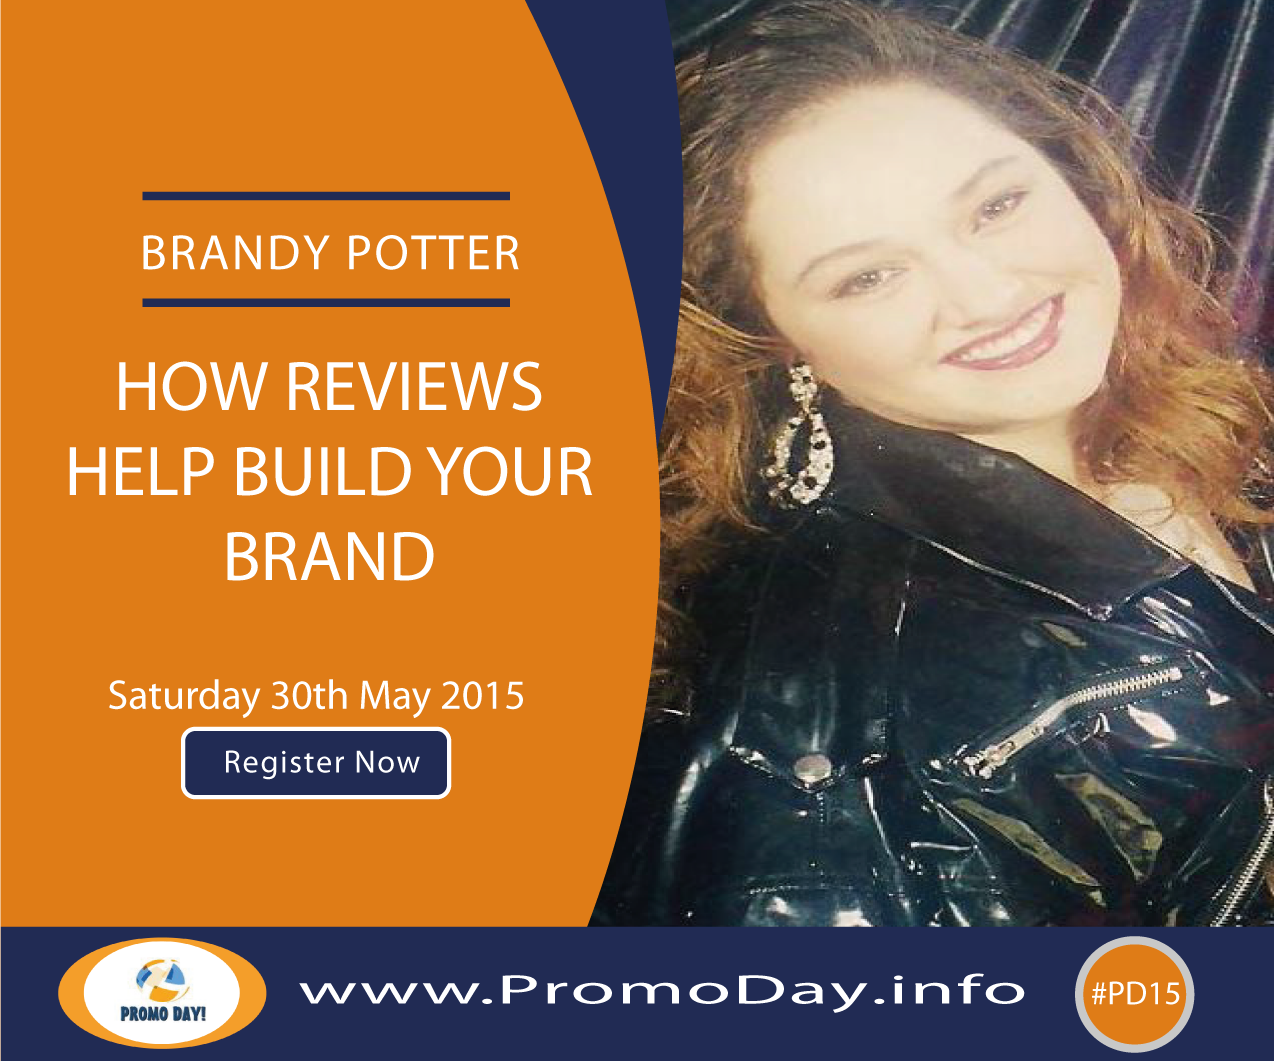 #PD15 Webinar: How Reviews help Build Your Brand with Brandy Potter. Register now at www.PromoDay.info